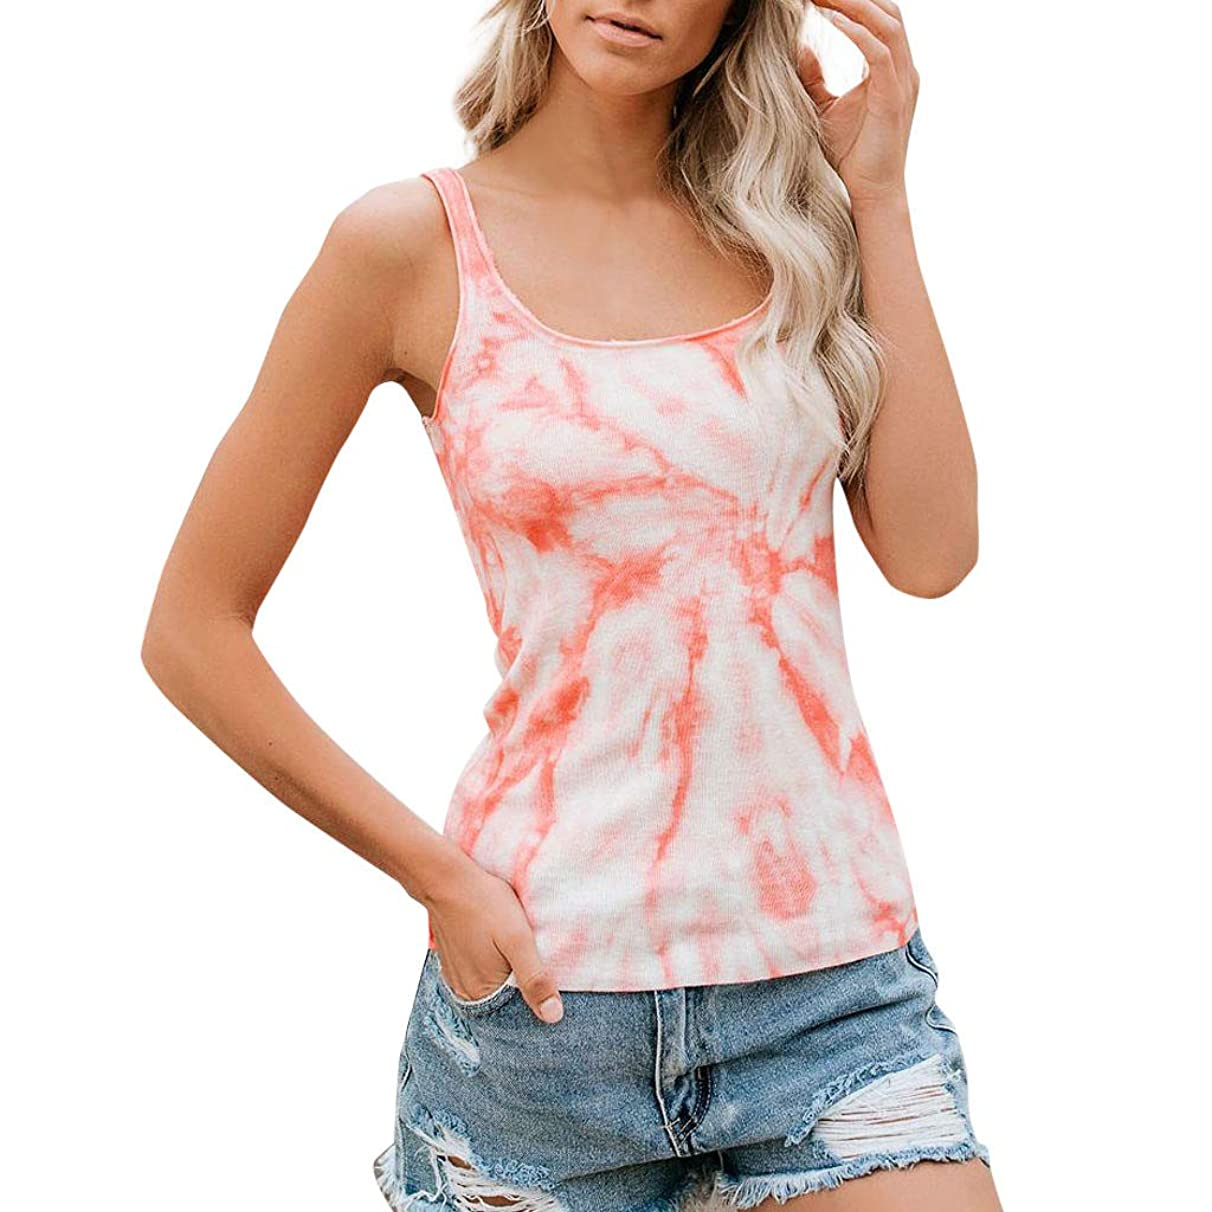 Eaktool Womens Tops,Women's Summer Casual Slim Fit Sleeveless O-Neck Tie Dyed Printed Vest